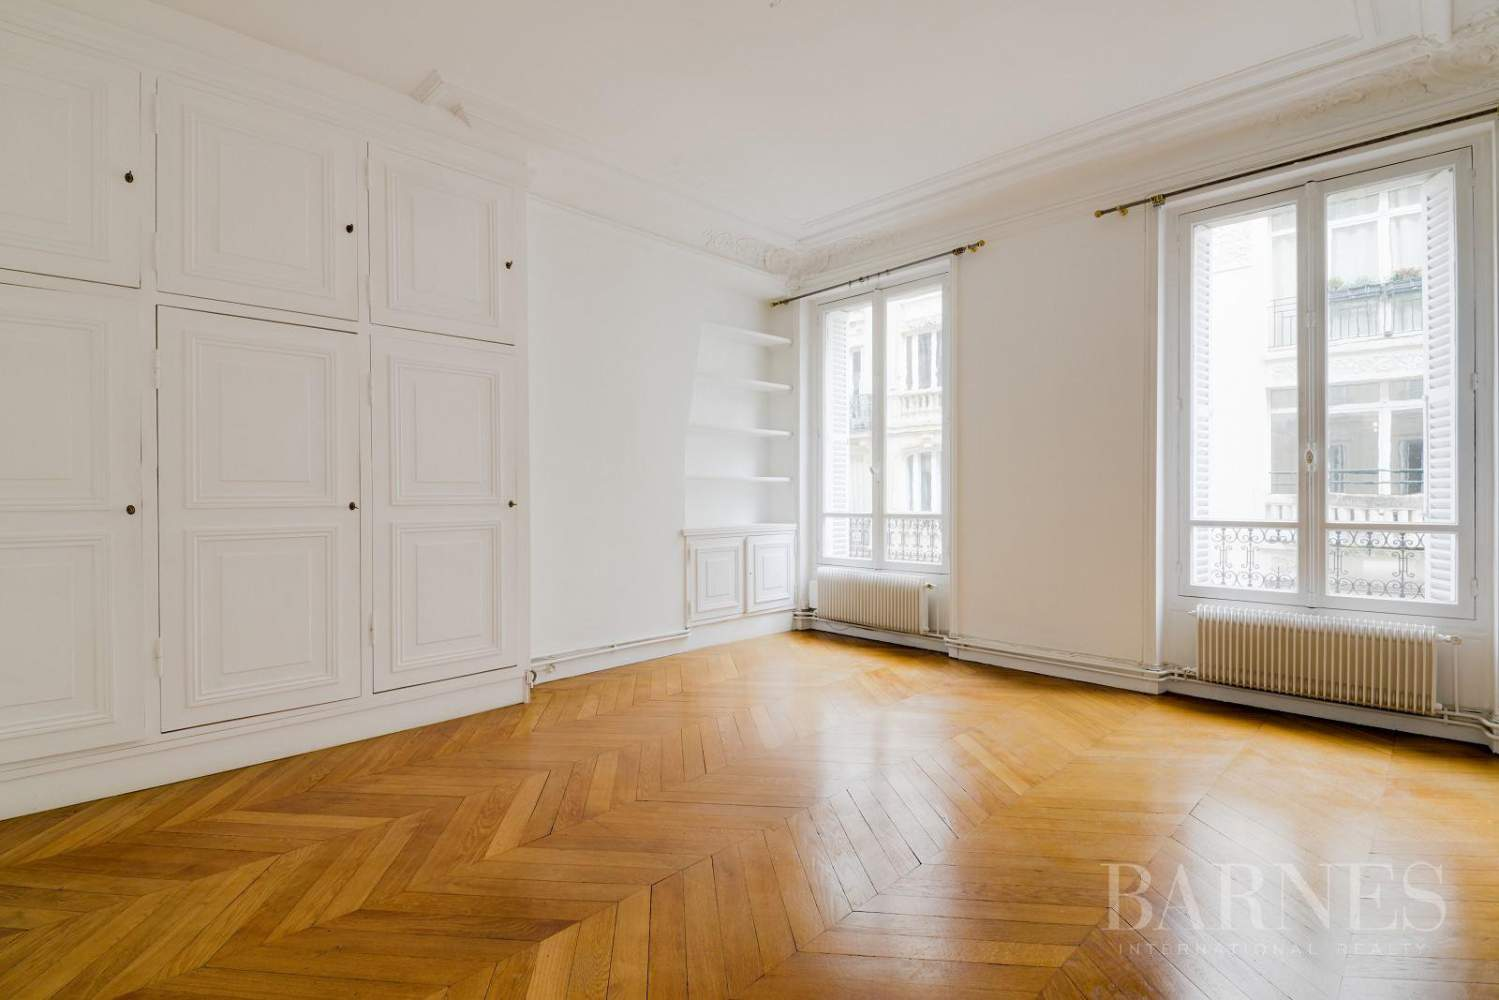 APPARTEMENT NEUILLY SABLONS 4 CHAMBRES 145M² picture 12